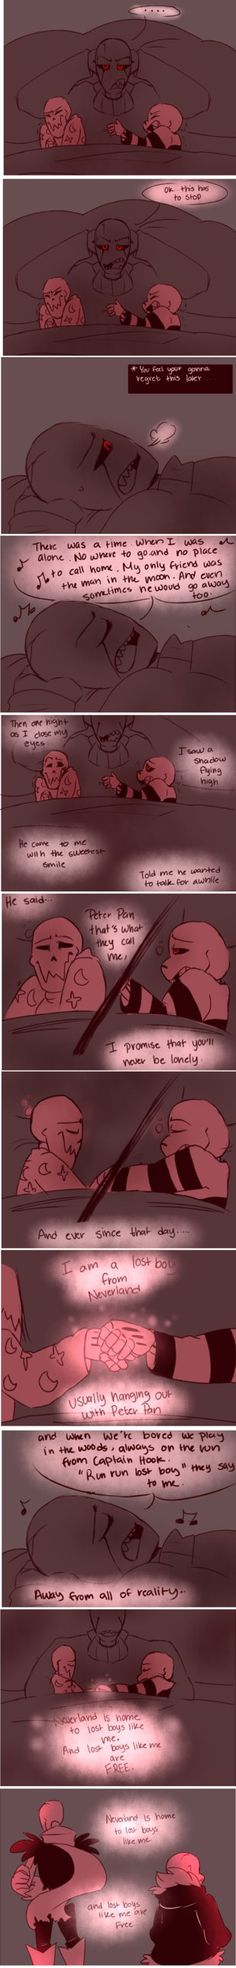 their lullaby (underfell) by Bunnymuse on DeviantArt